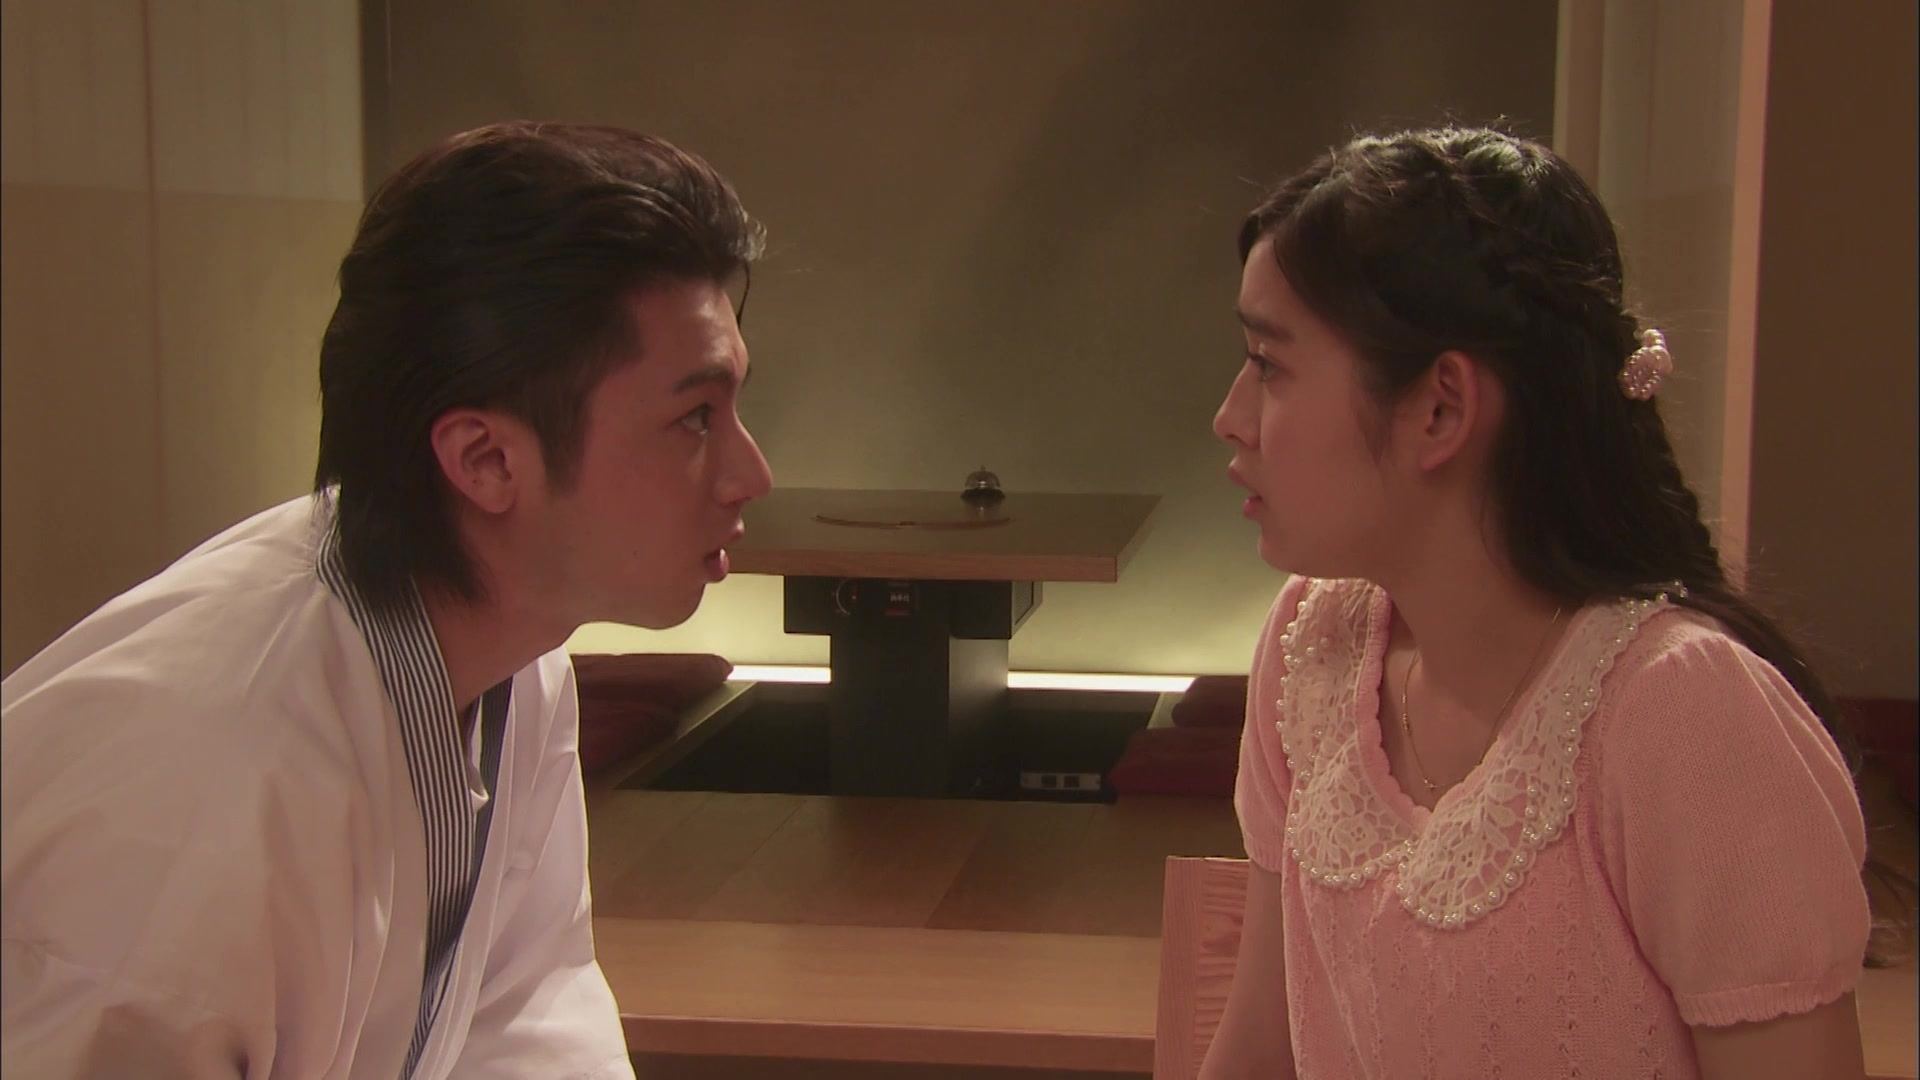 Mischievous Kiss - Love in Tokyo Episode 16, The Miracle of